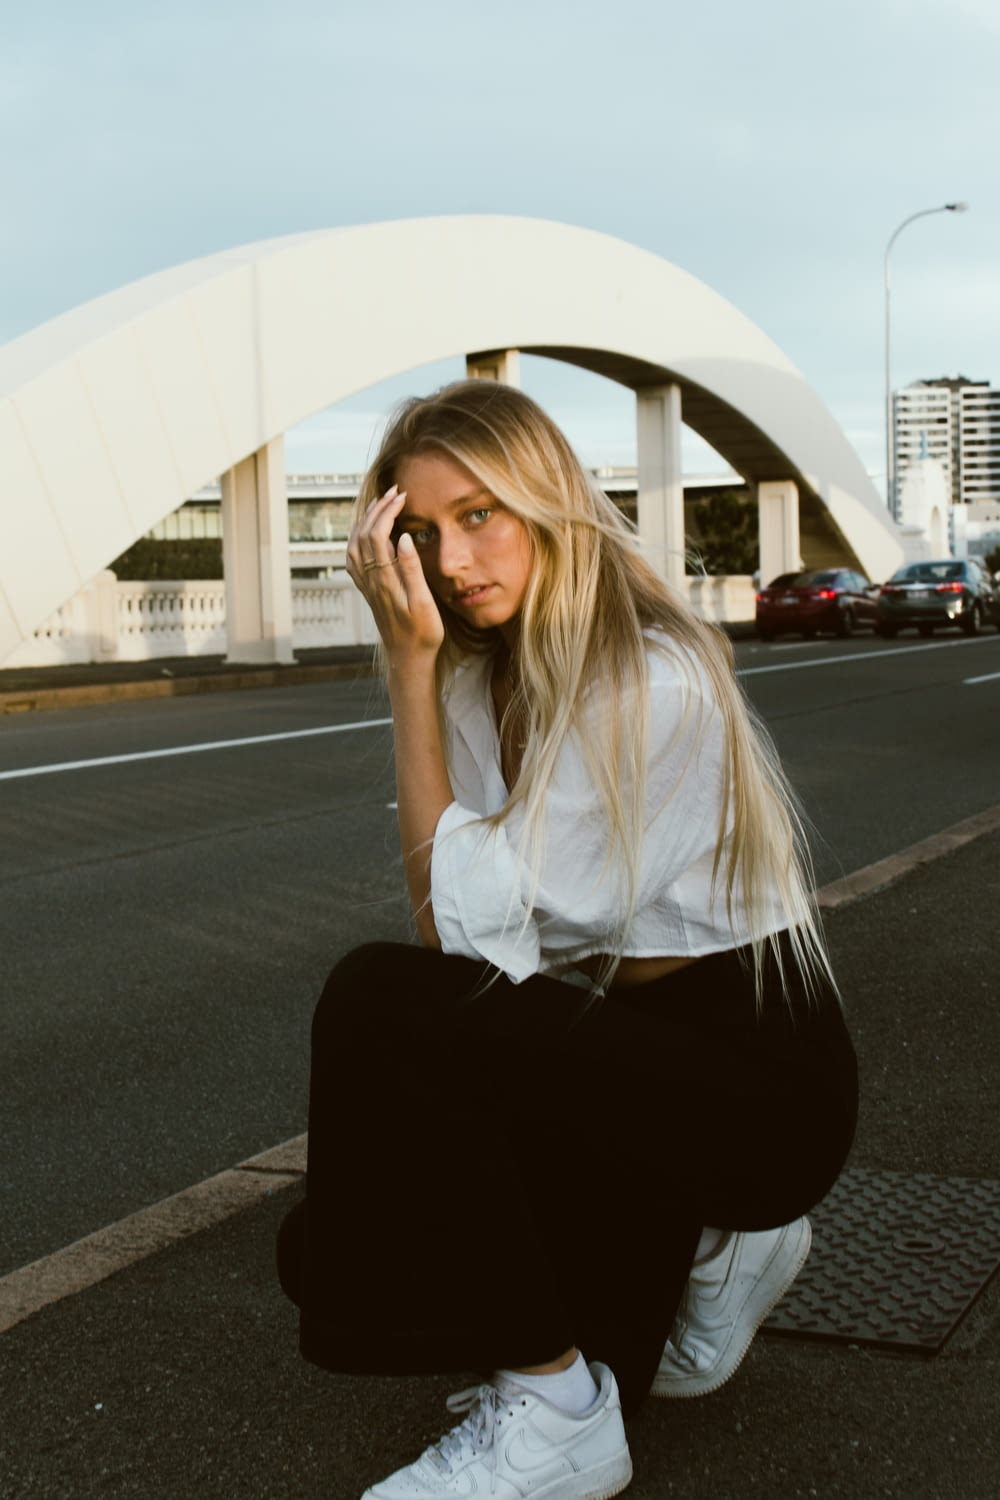 woman in white long sleeve shirt and black pants sitting on gray asphalt road during daytime